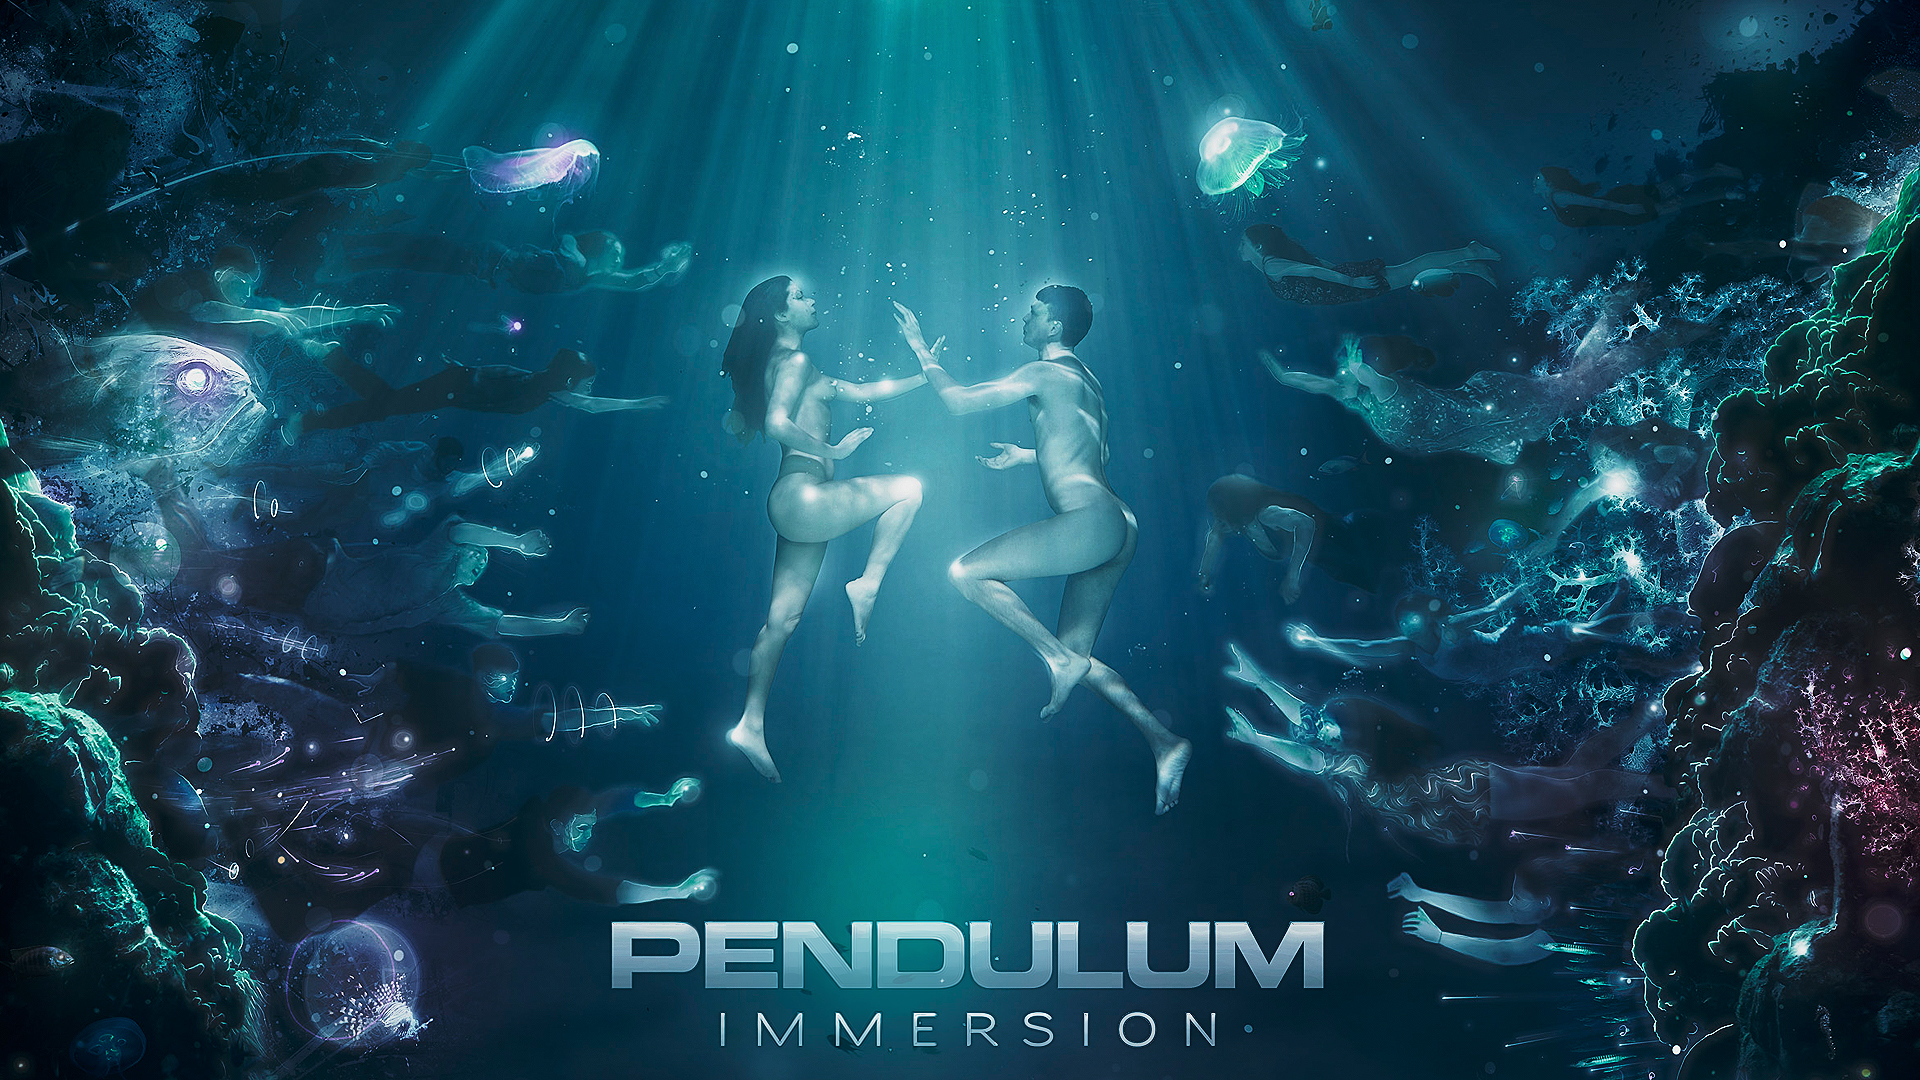 Pendulum-Immersion-wallpaper